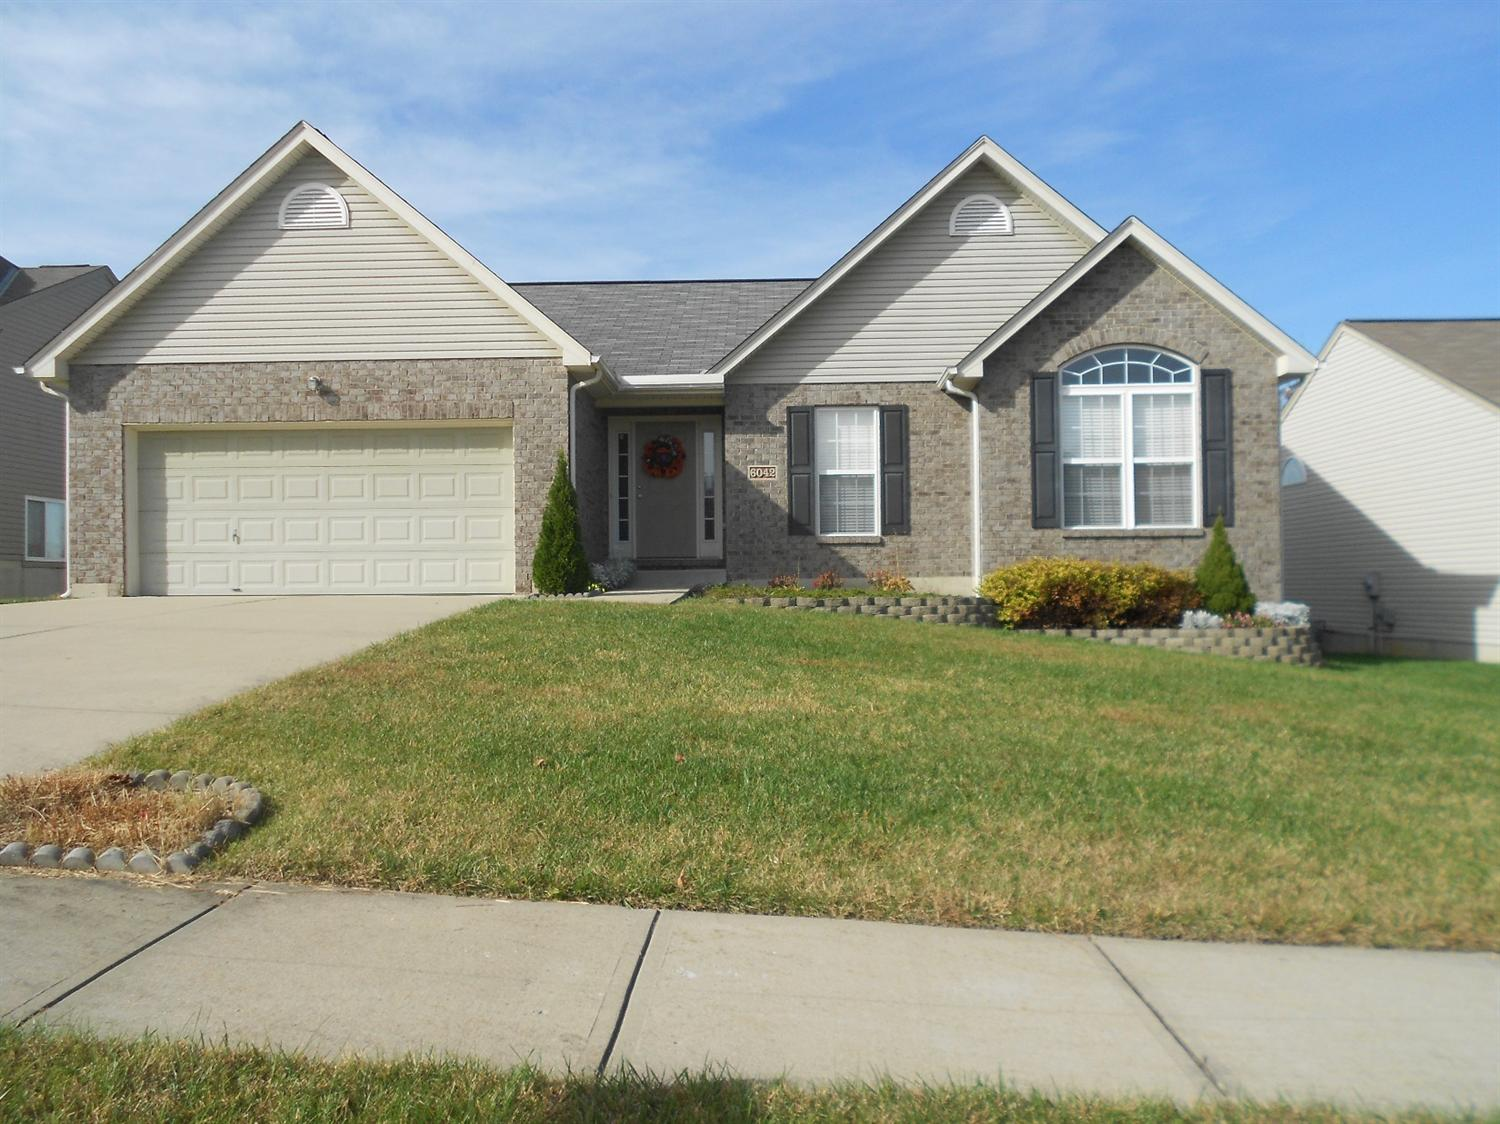 Photo 1 for 6042 Ethan Dr Burlington, KY 41005